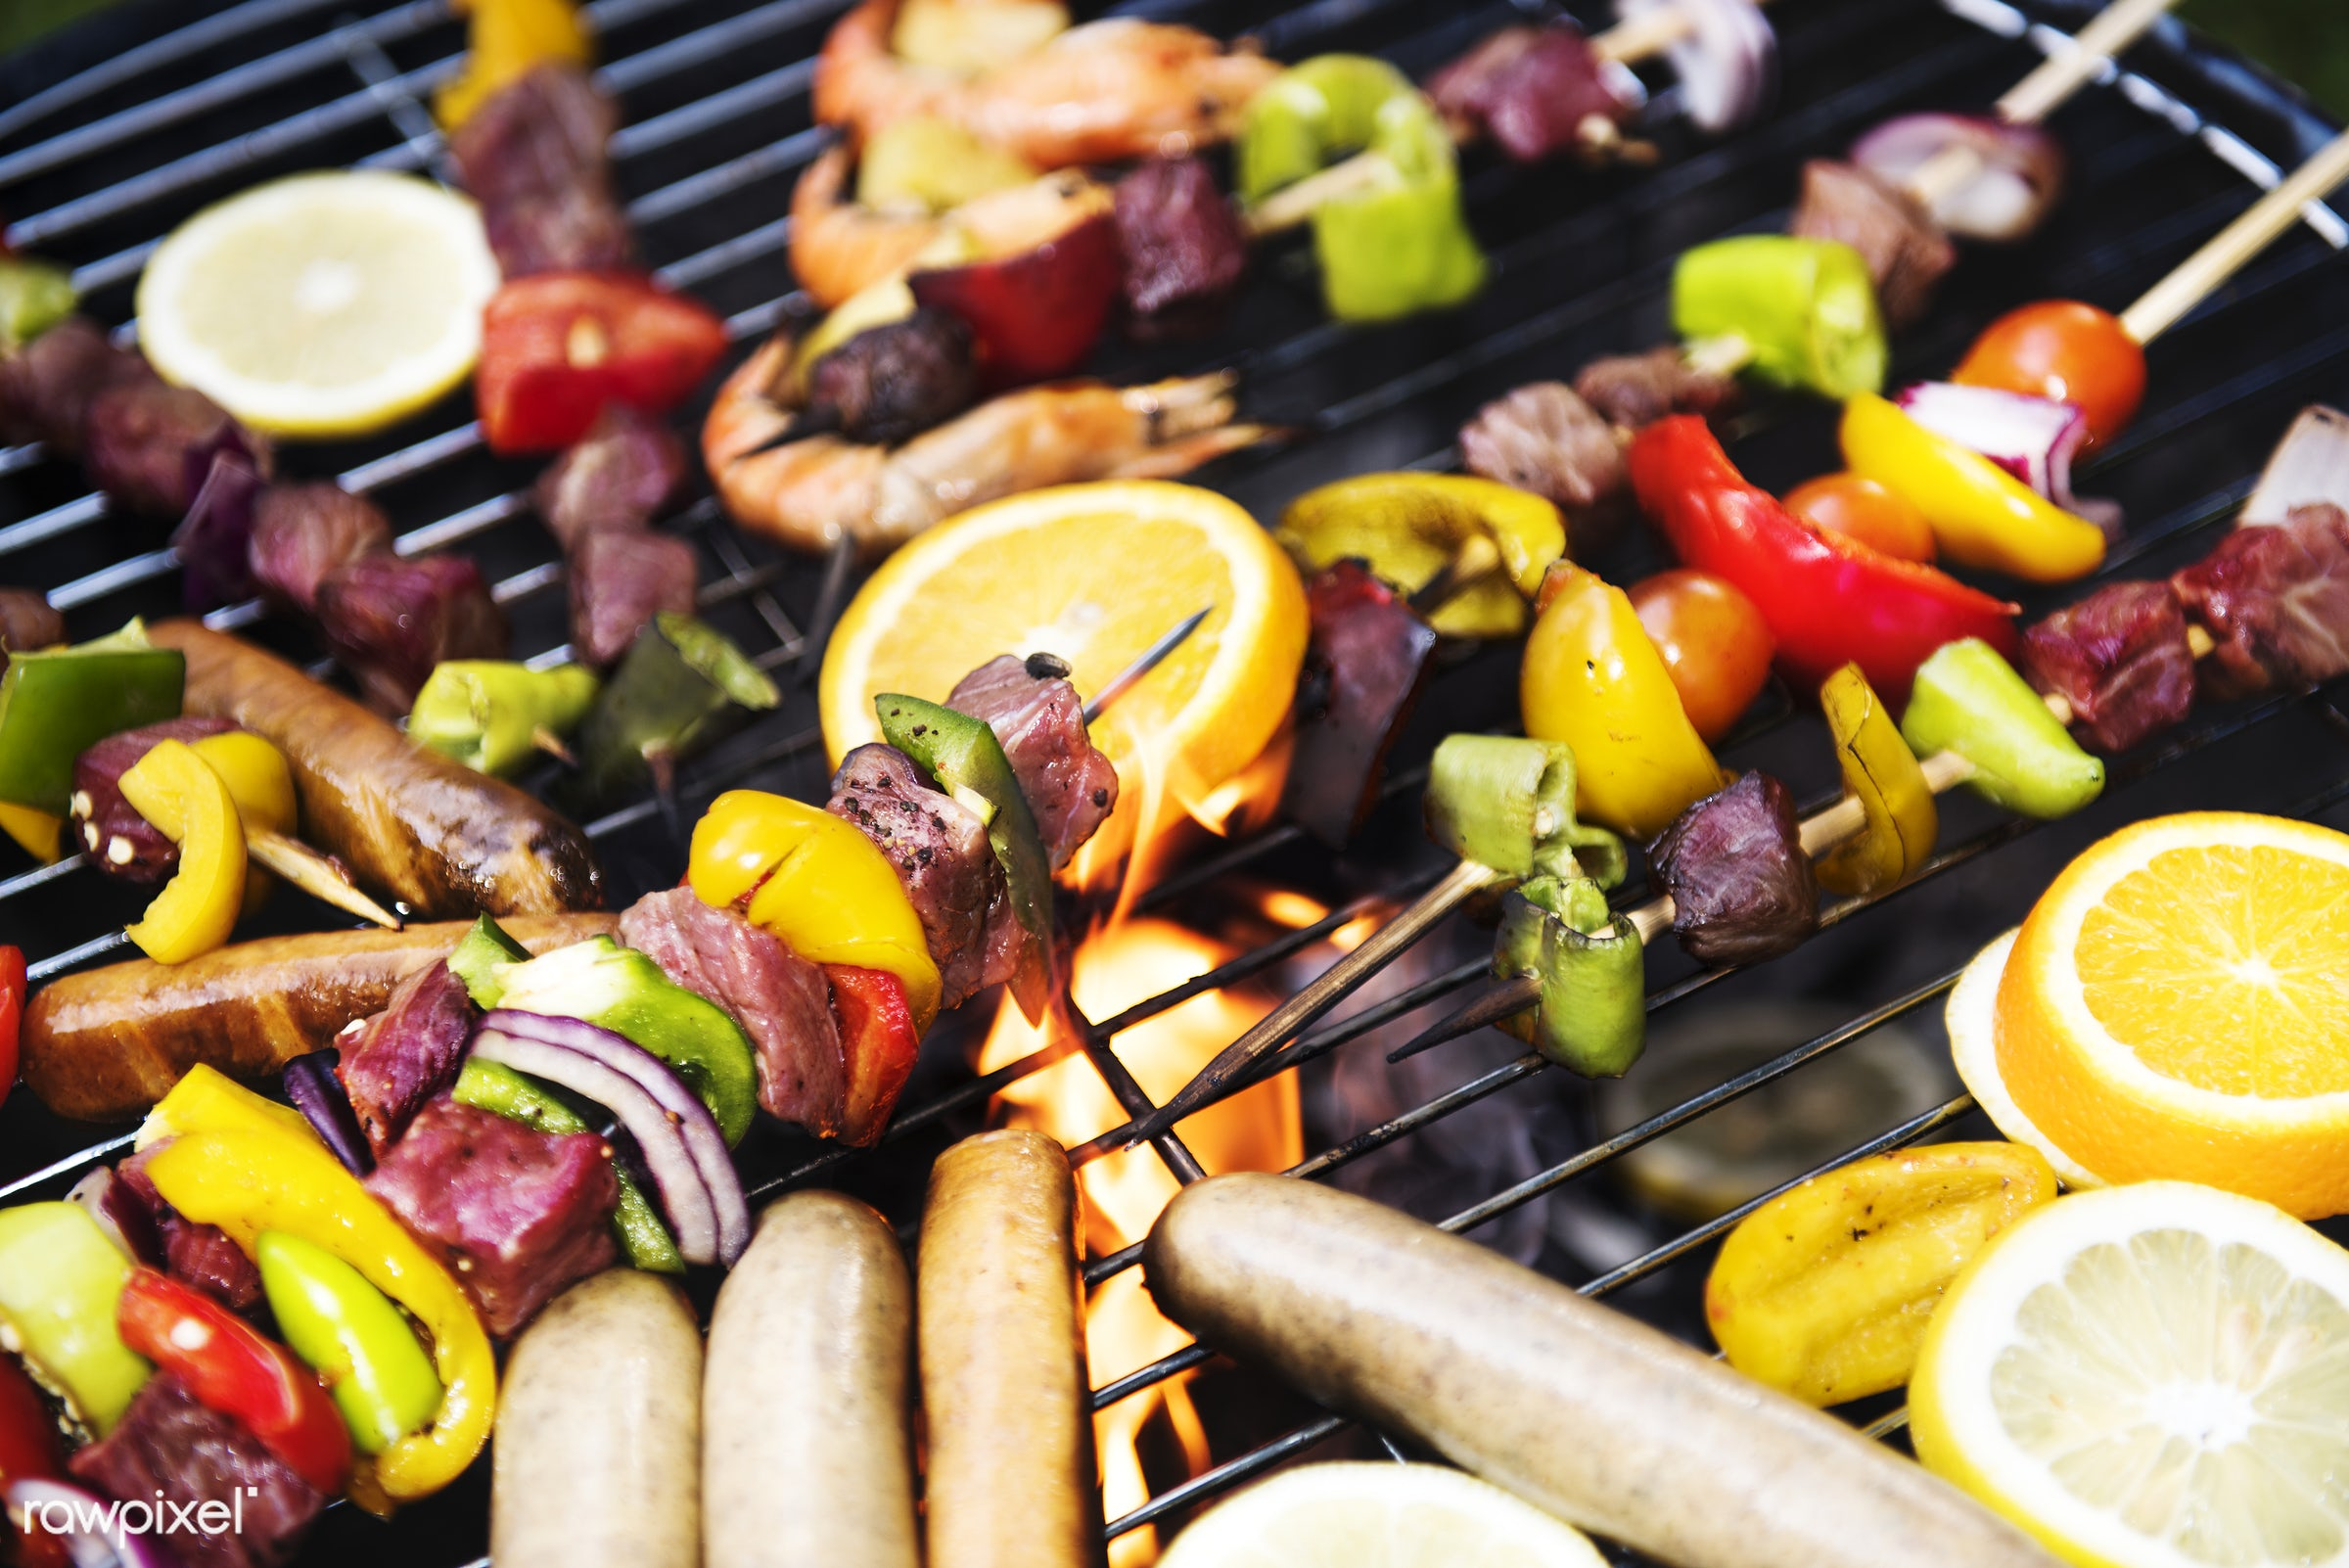 Cooking barbecue on charcoal grill - bbq, barbecue, meat, sausage, charcoals, closeup, cook, cooking, cookout, fire, food,...